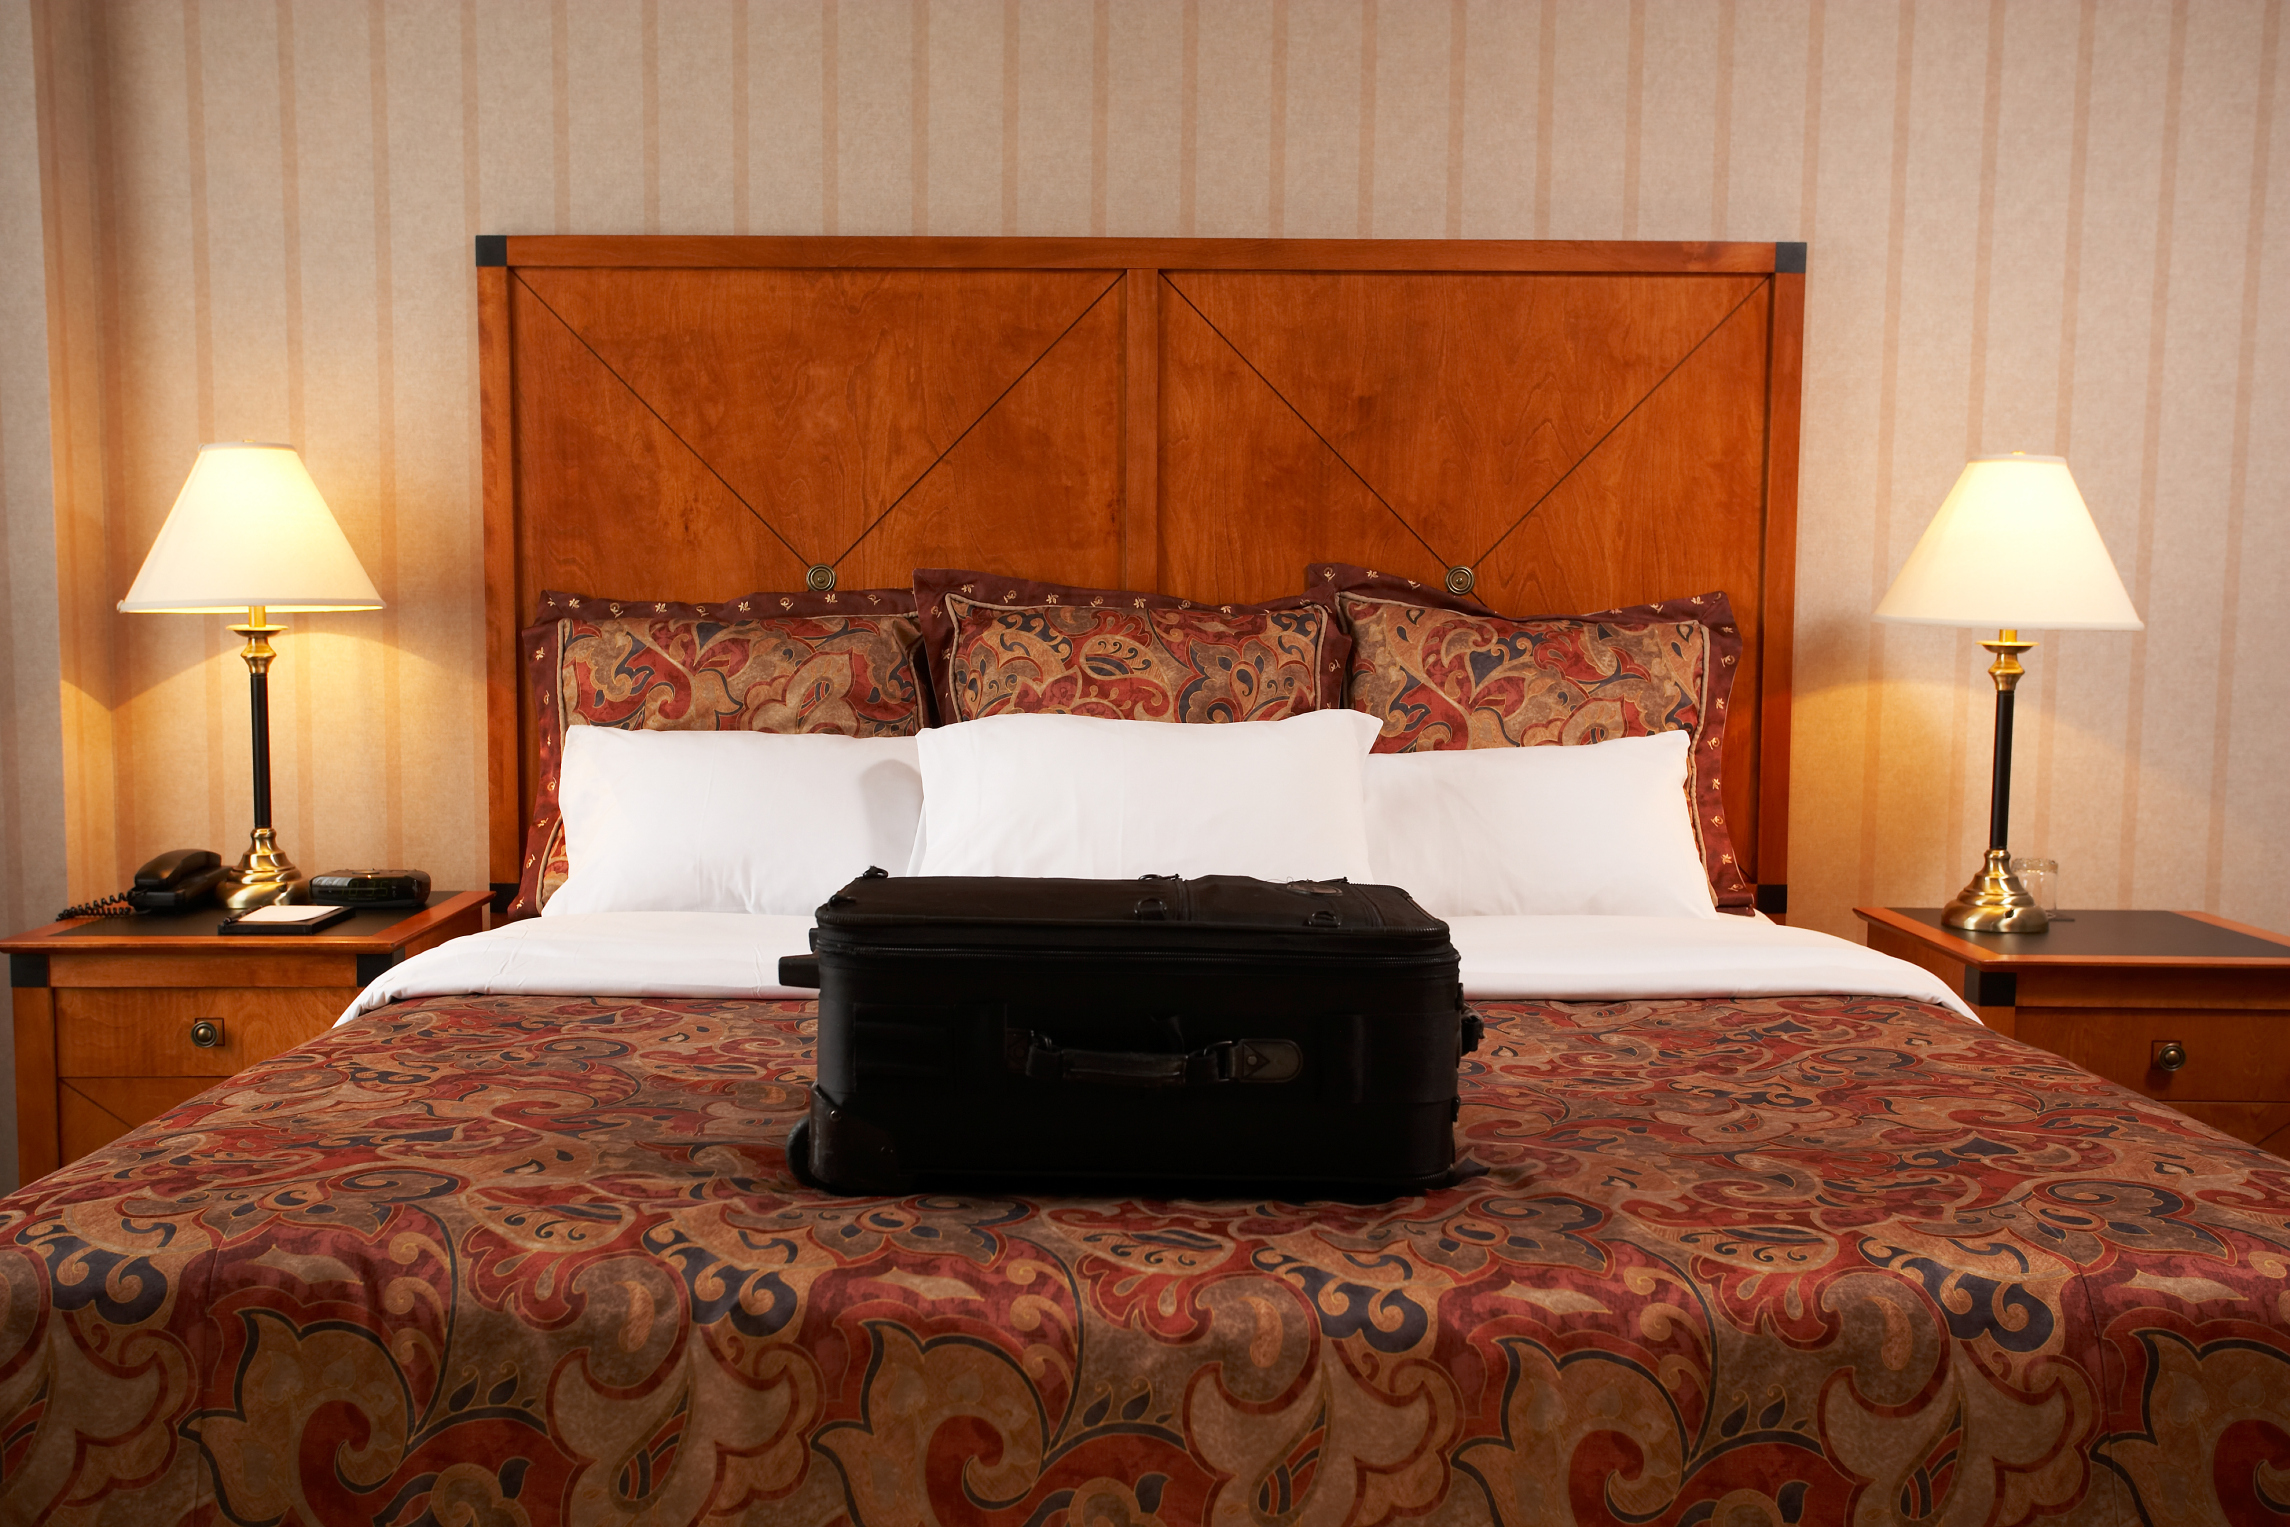 How to Kill Fleas and Bed Bugs in a Hotel Room | Getaway USA